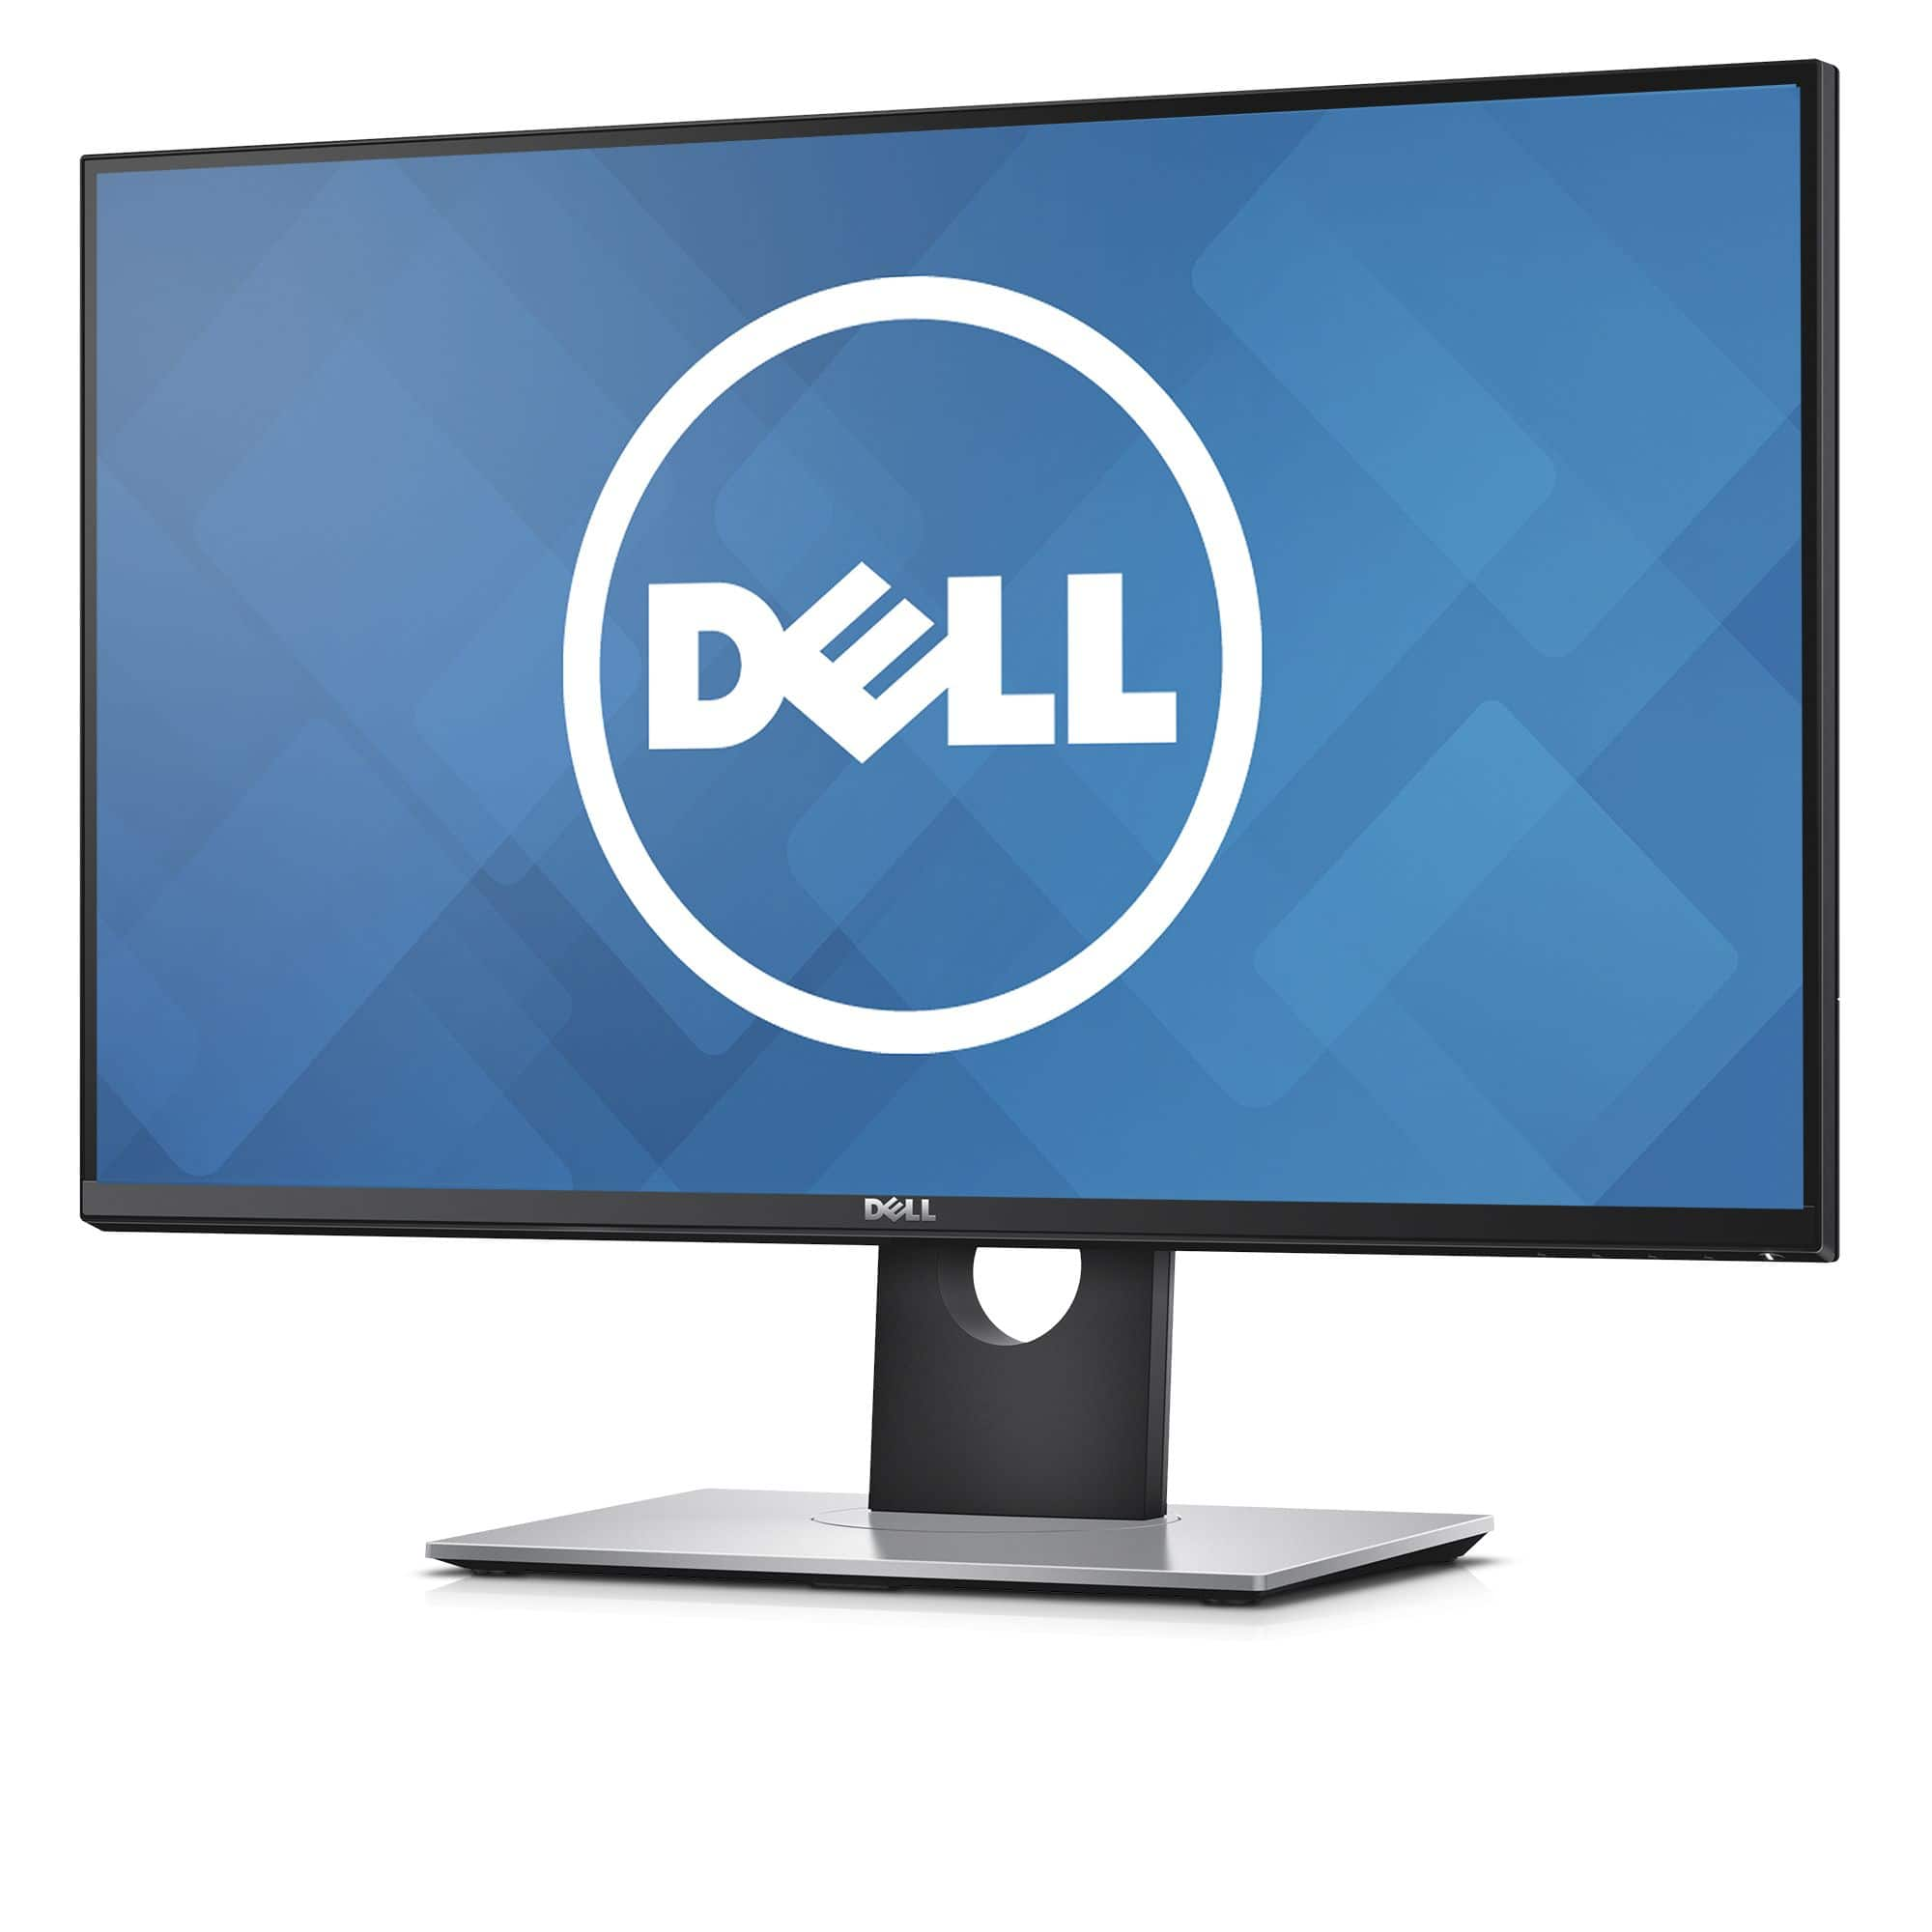 Dell Gaming S2716DG 27 Monitor with G-SYNC 144hz 1440p (2k) 1ms S2716DGR  $370